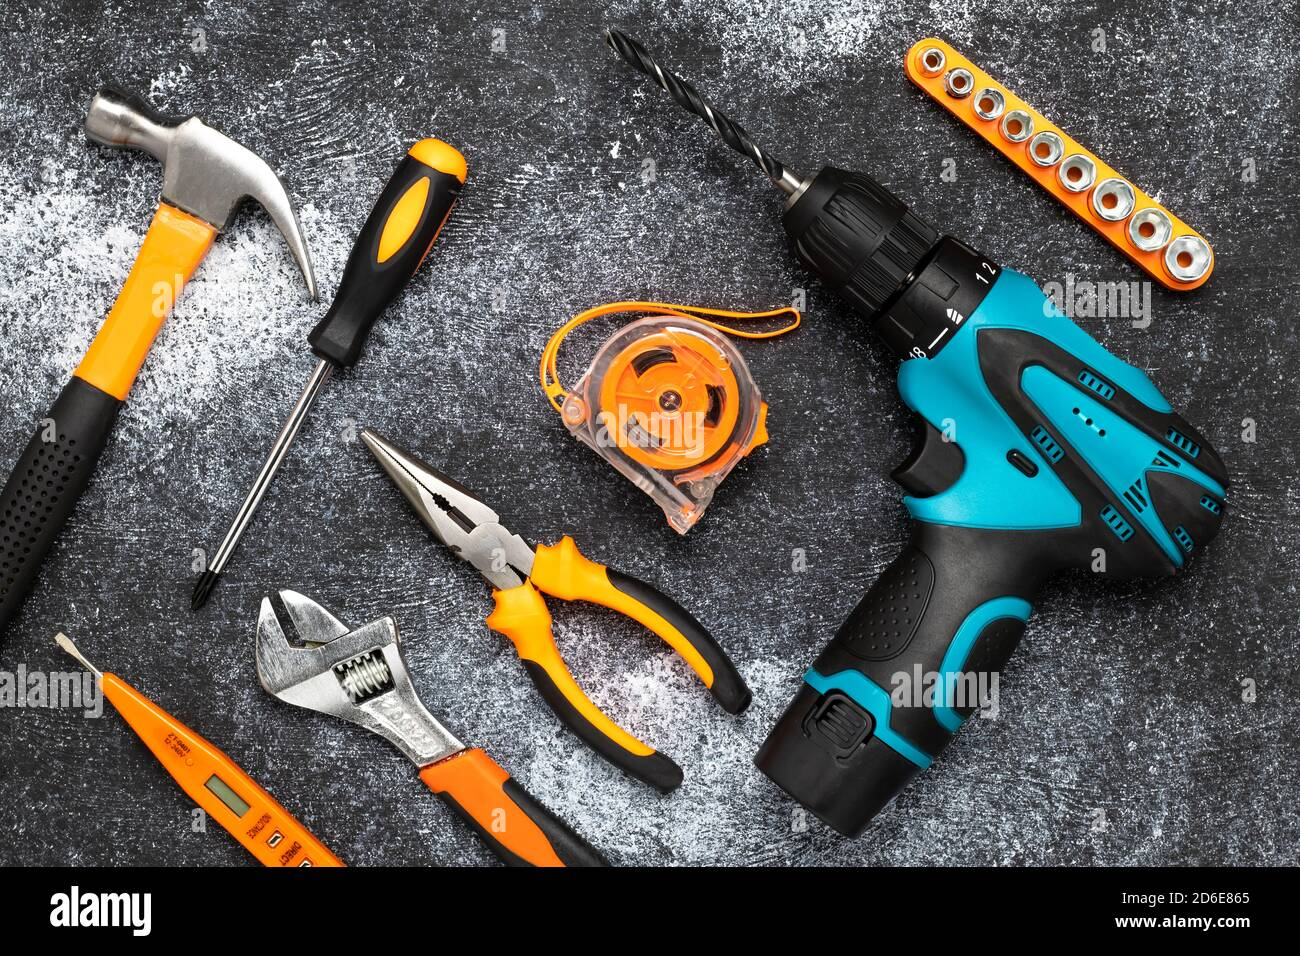 Set of tools on a dark background. Renovation concept, housework. Flat lay composition. Electric drill, screwdriver, tape measure, wrench, knife and h Stock Photo